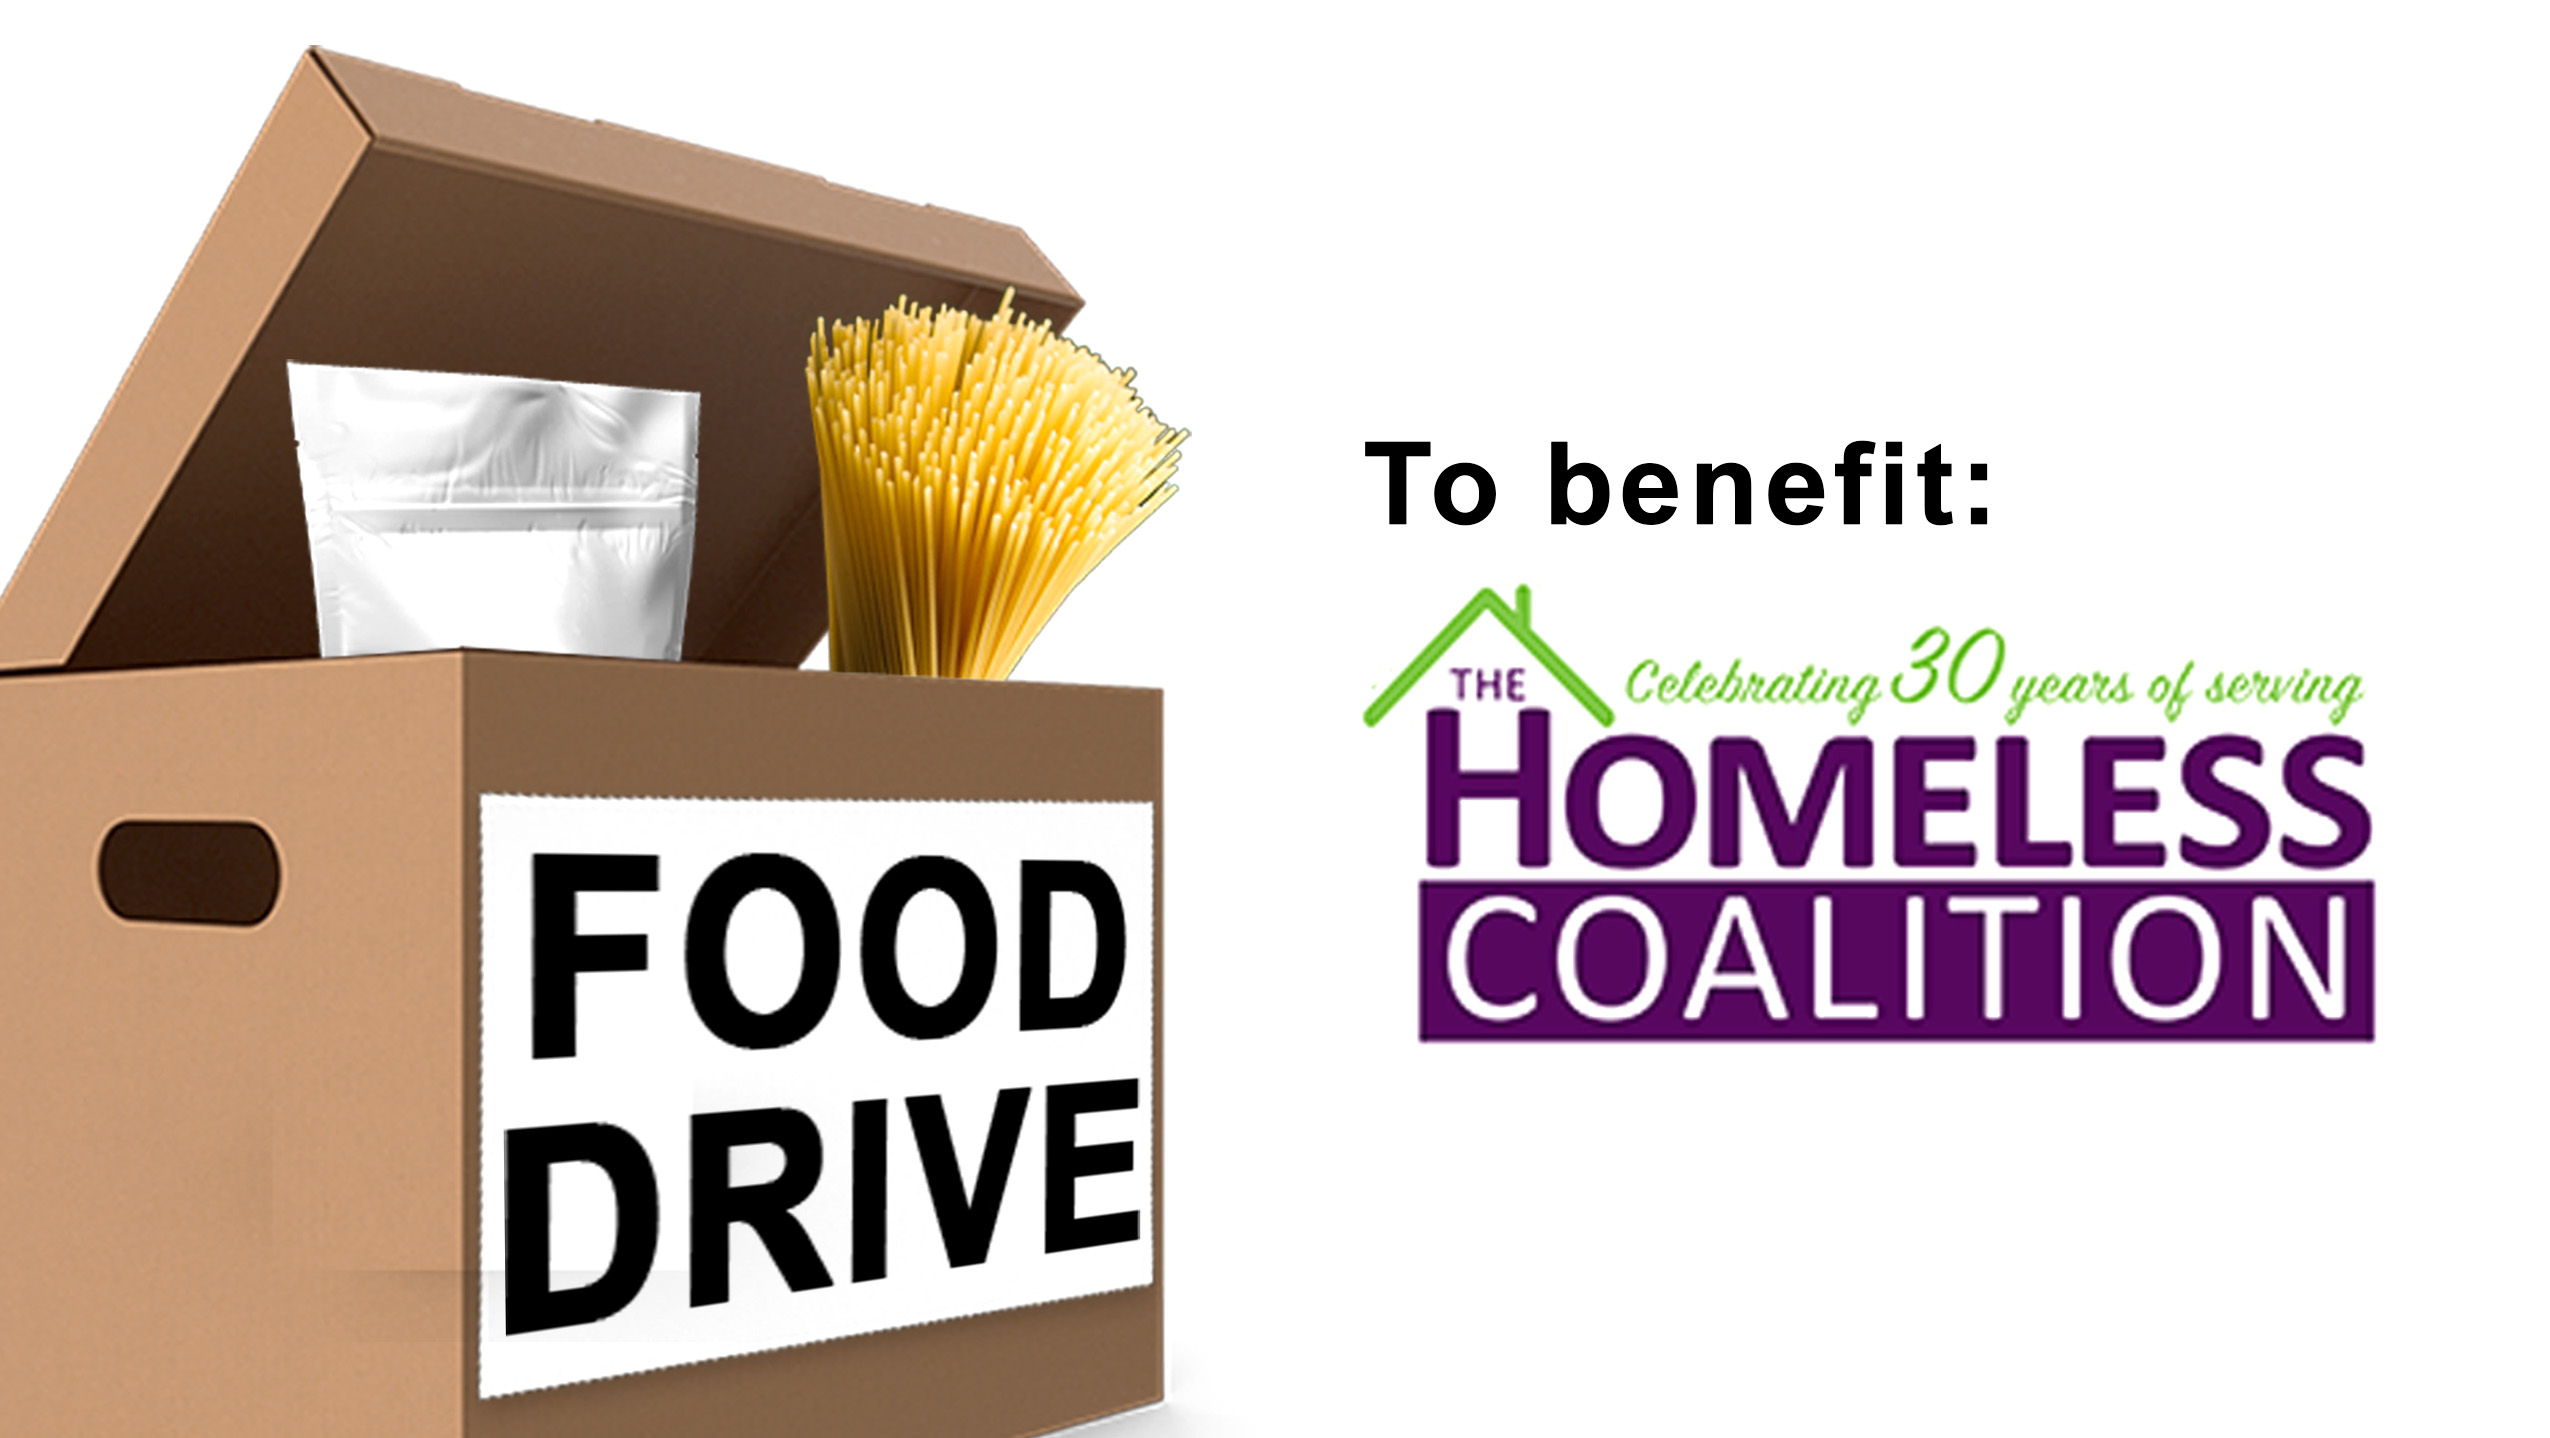 Food Drive In Support Of The Homeless Coalition